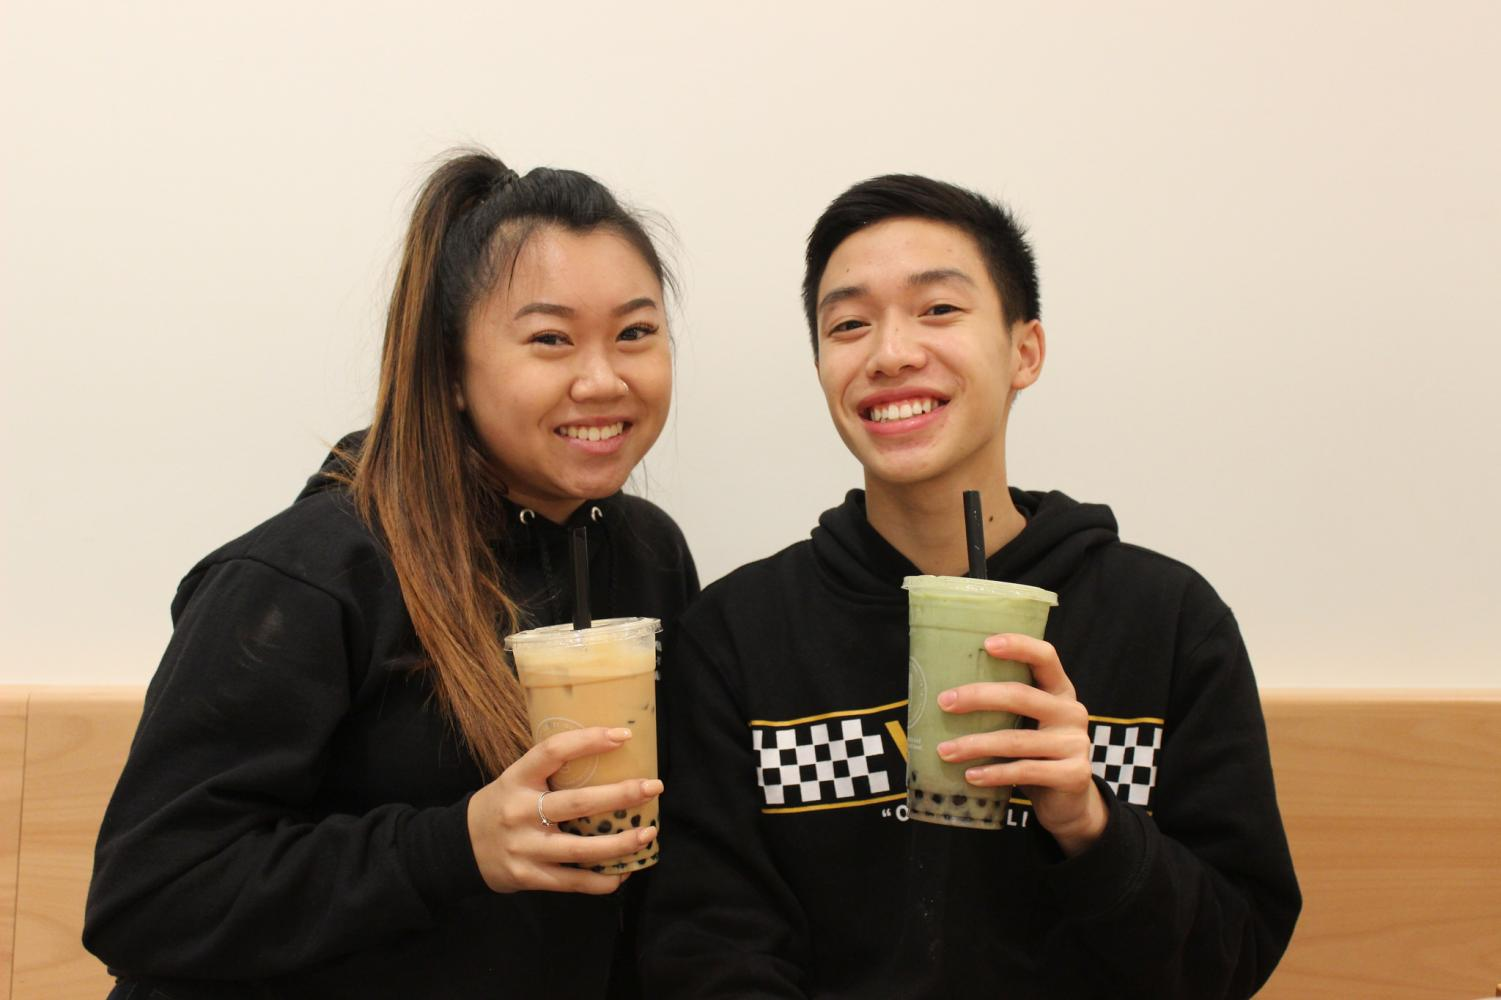 DVHS seniors Brandom Pham and Amy Yao are Boba Guys